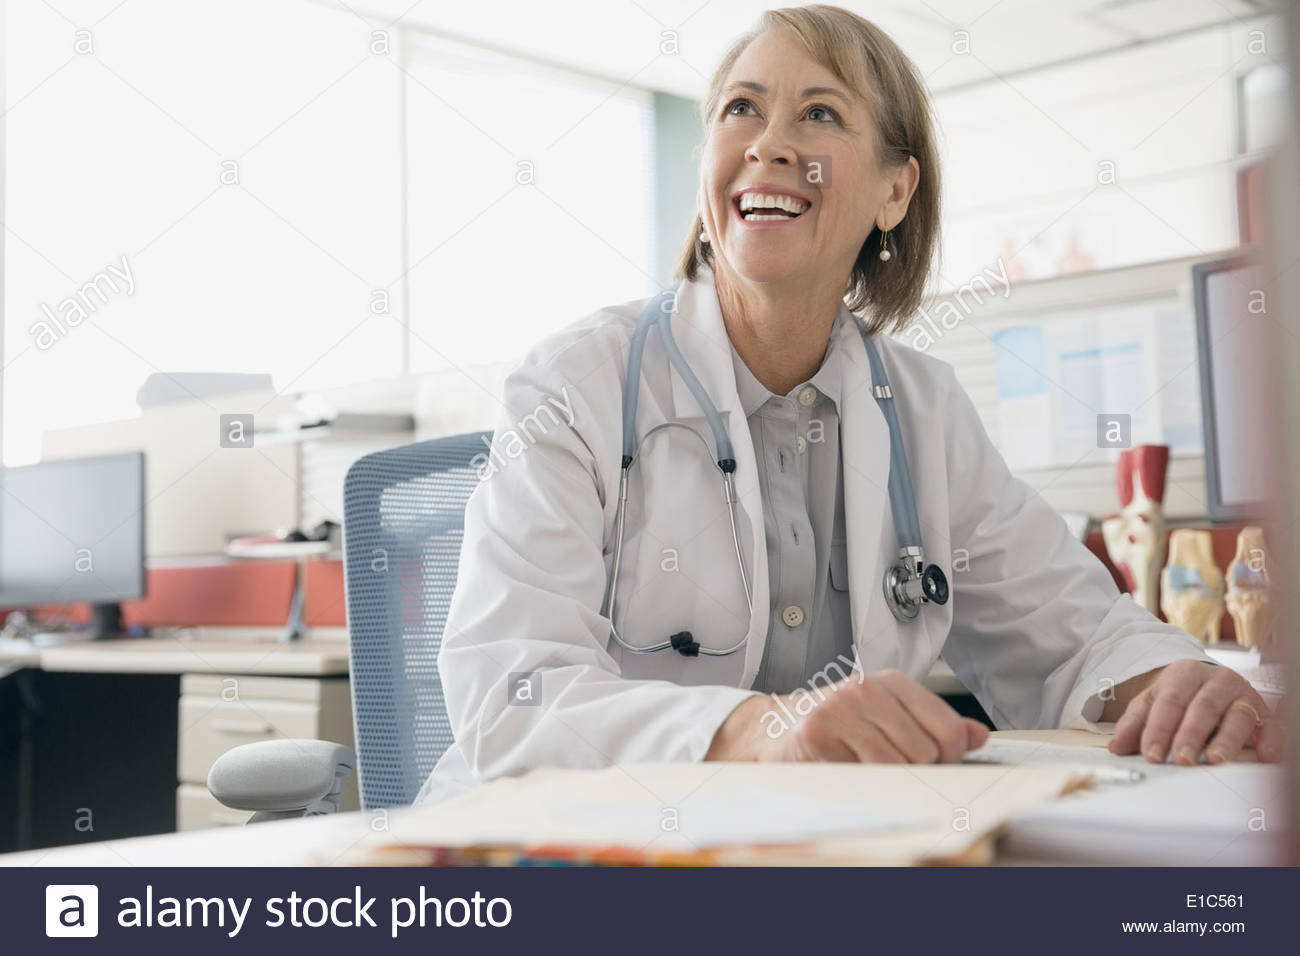 Smiling doctor working at desk - Stock Image